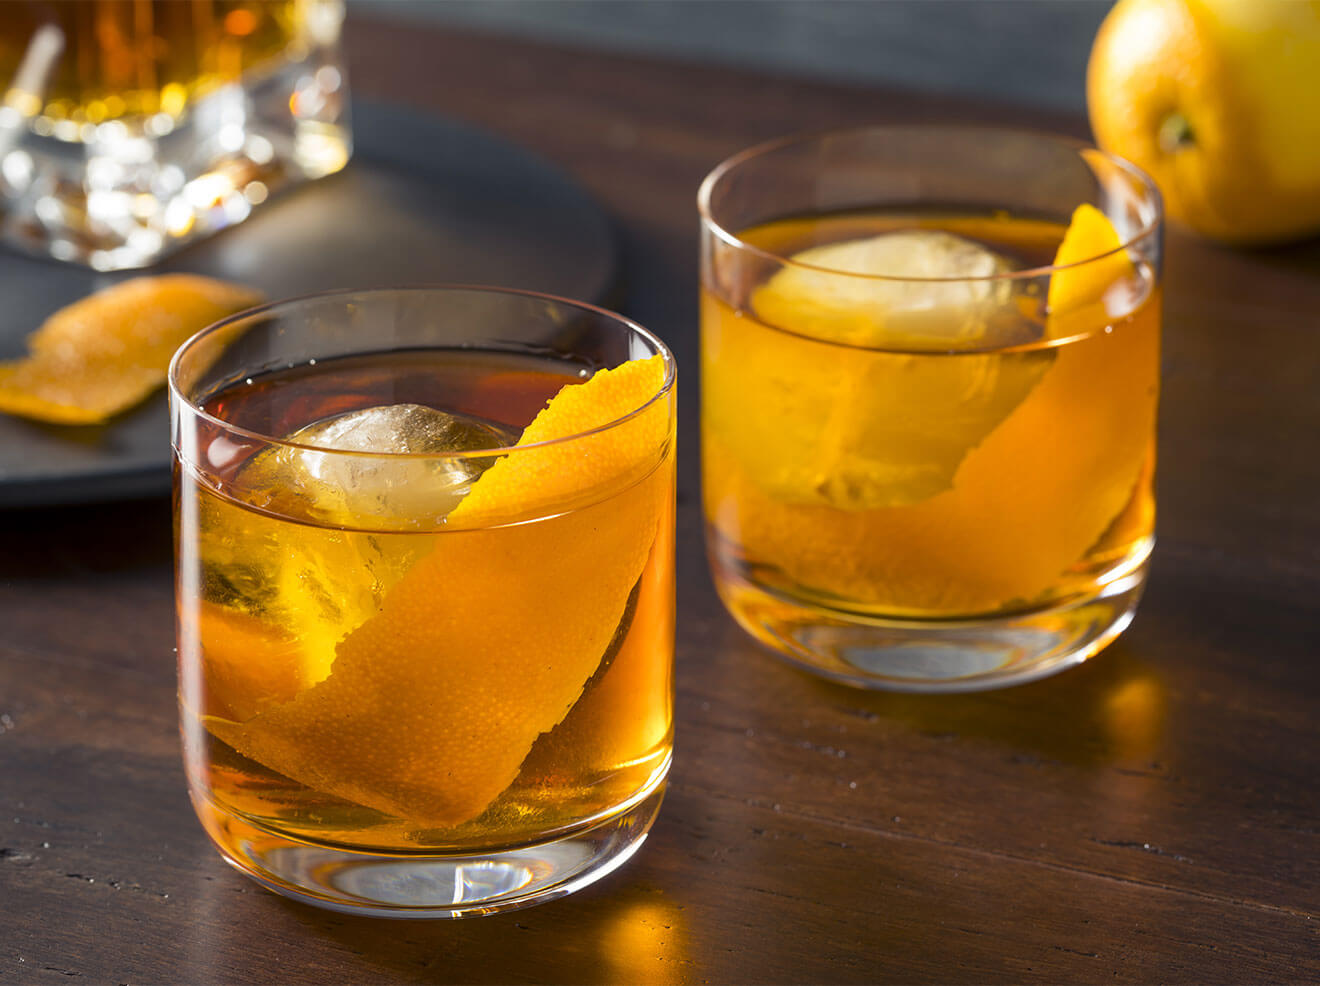 Rye Old Fashioned, cocktails with garnish